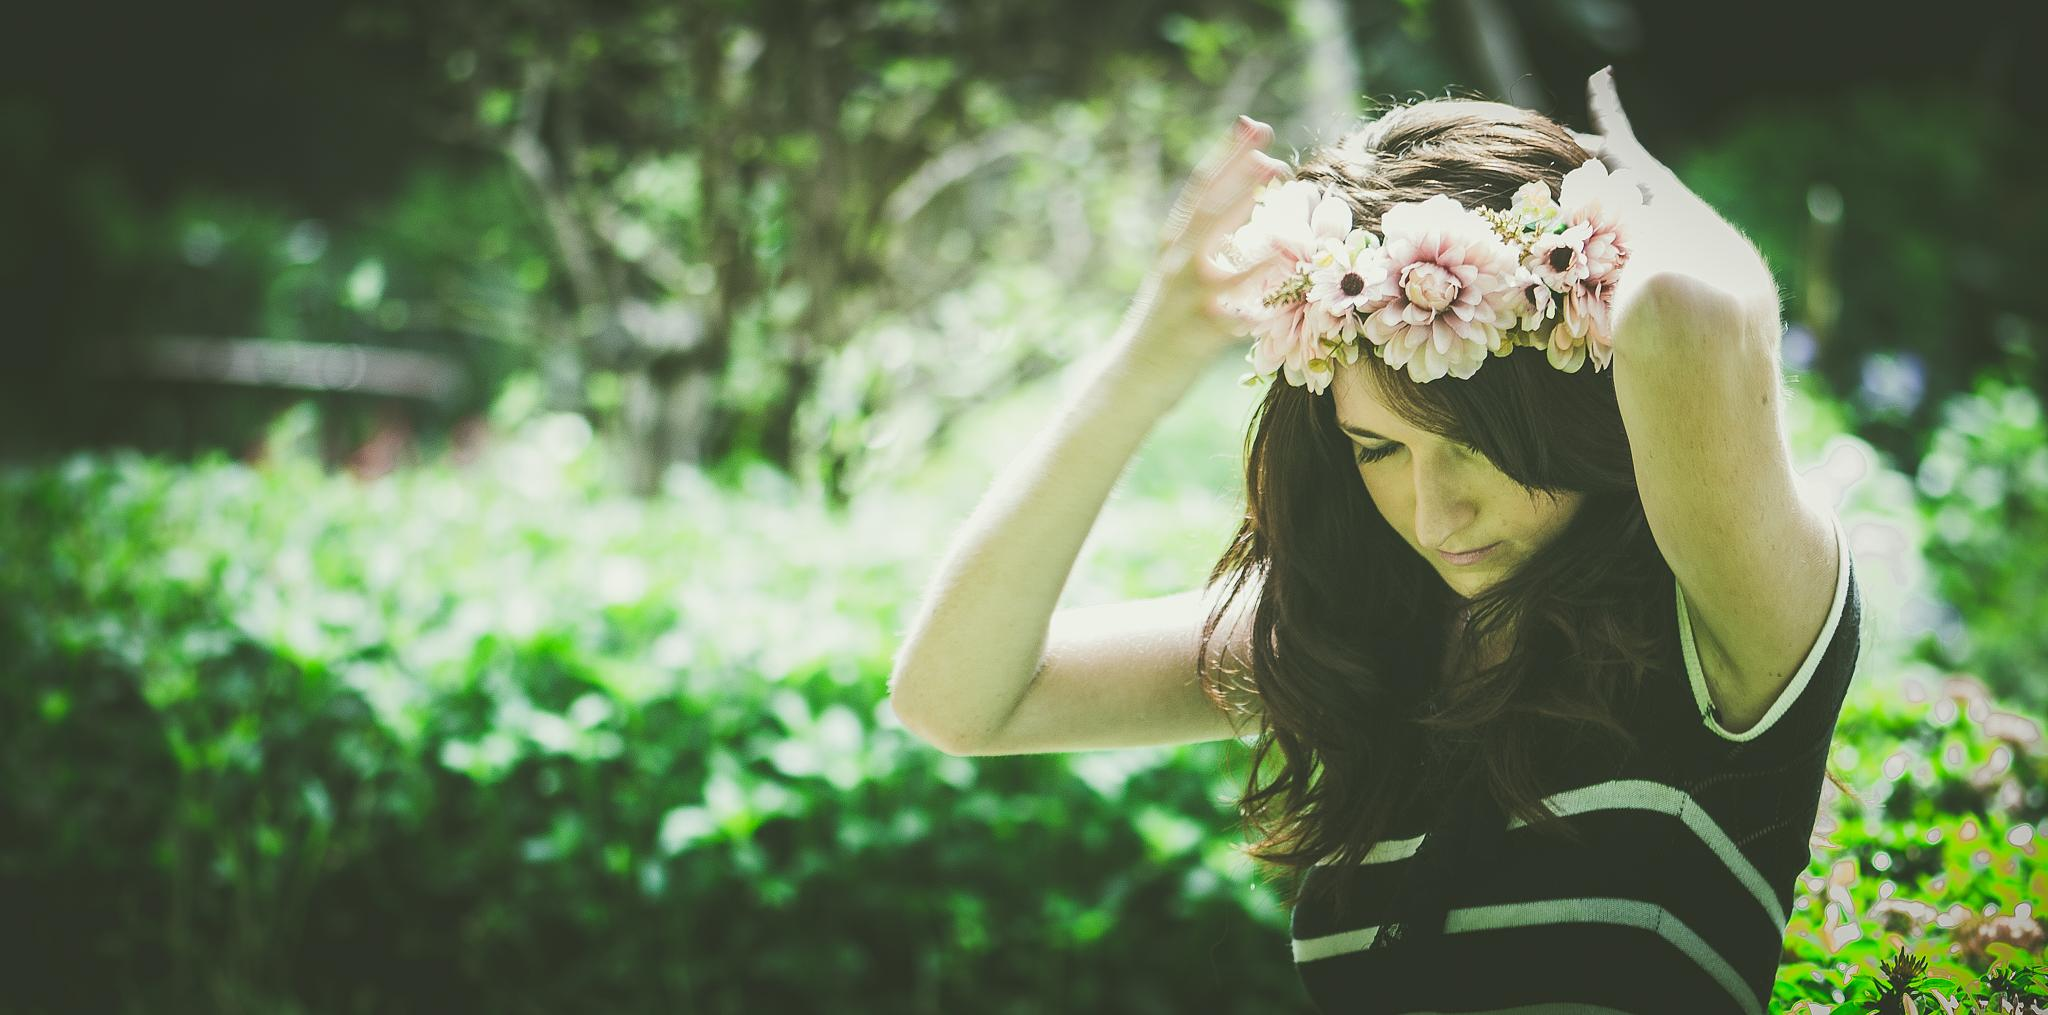 One with nature by Kapture - Street & Fashion Photography